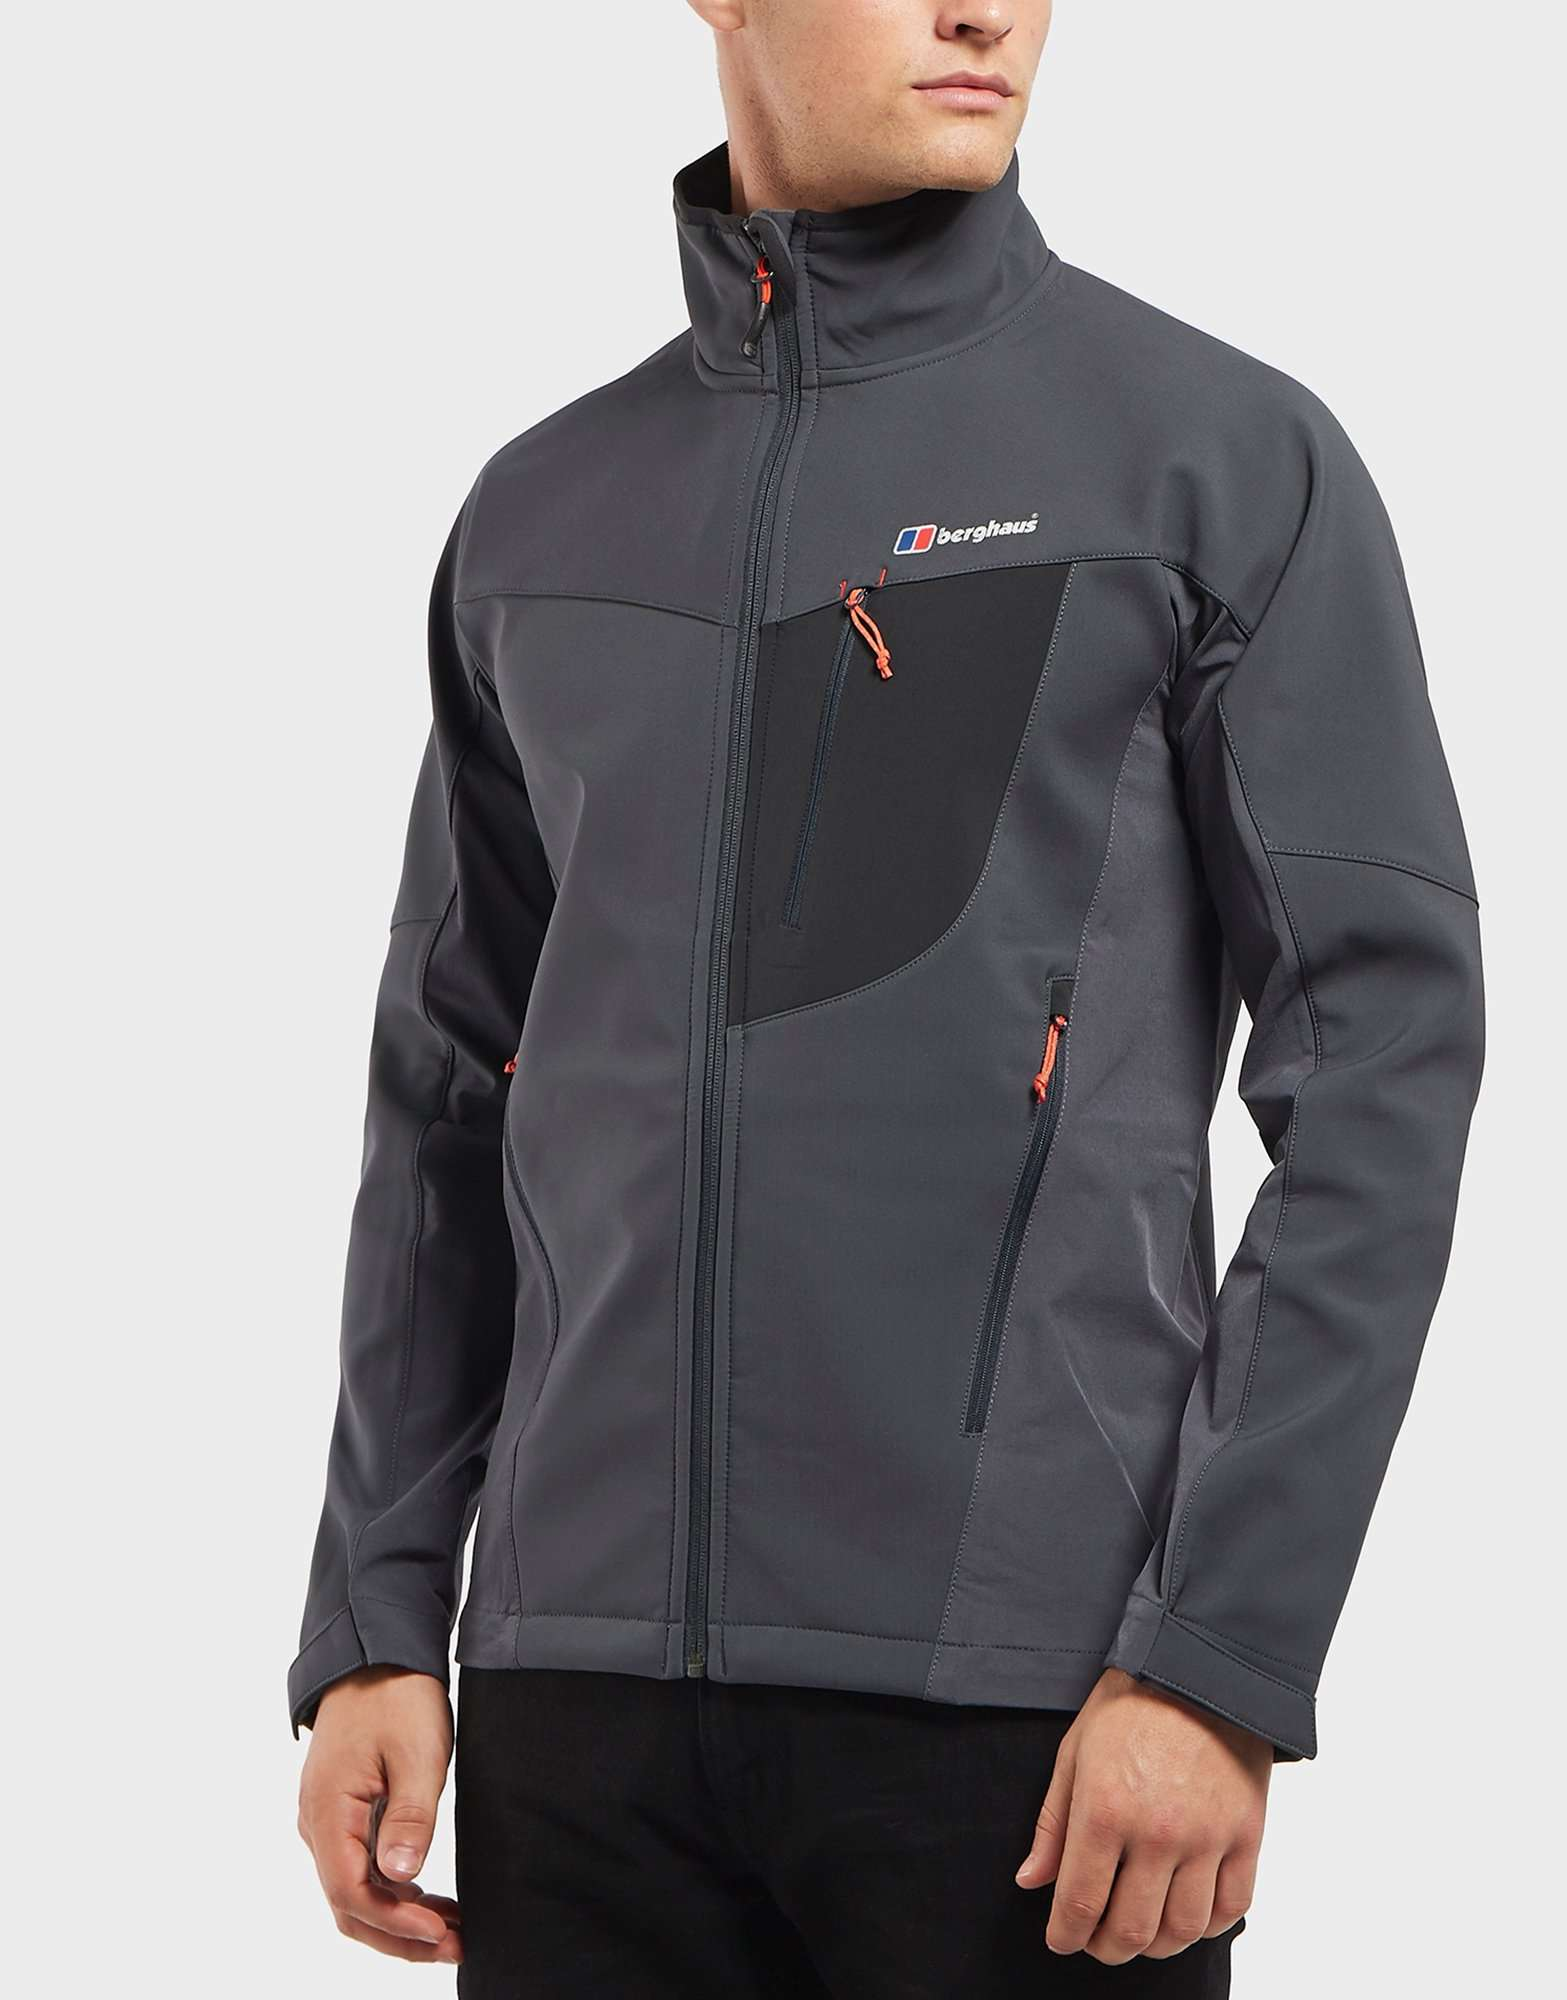 Berghaus Ghlas Softshell Lightweight Jacket